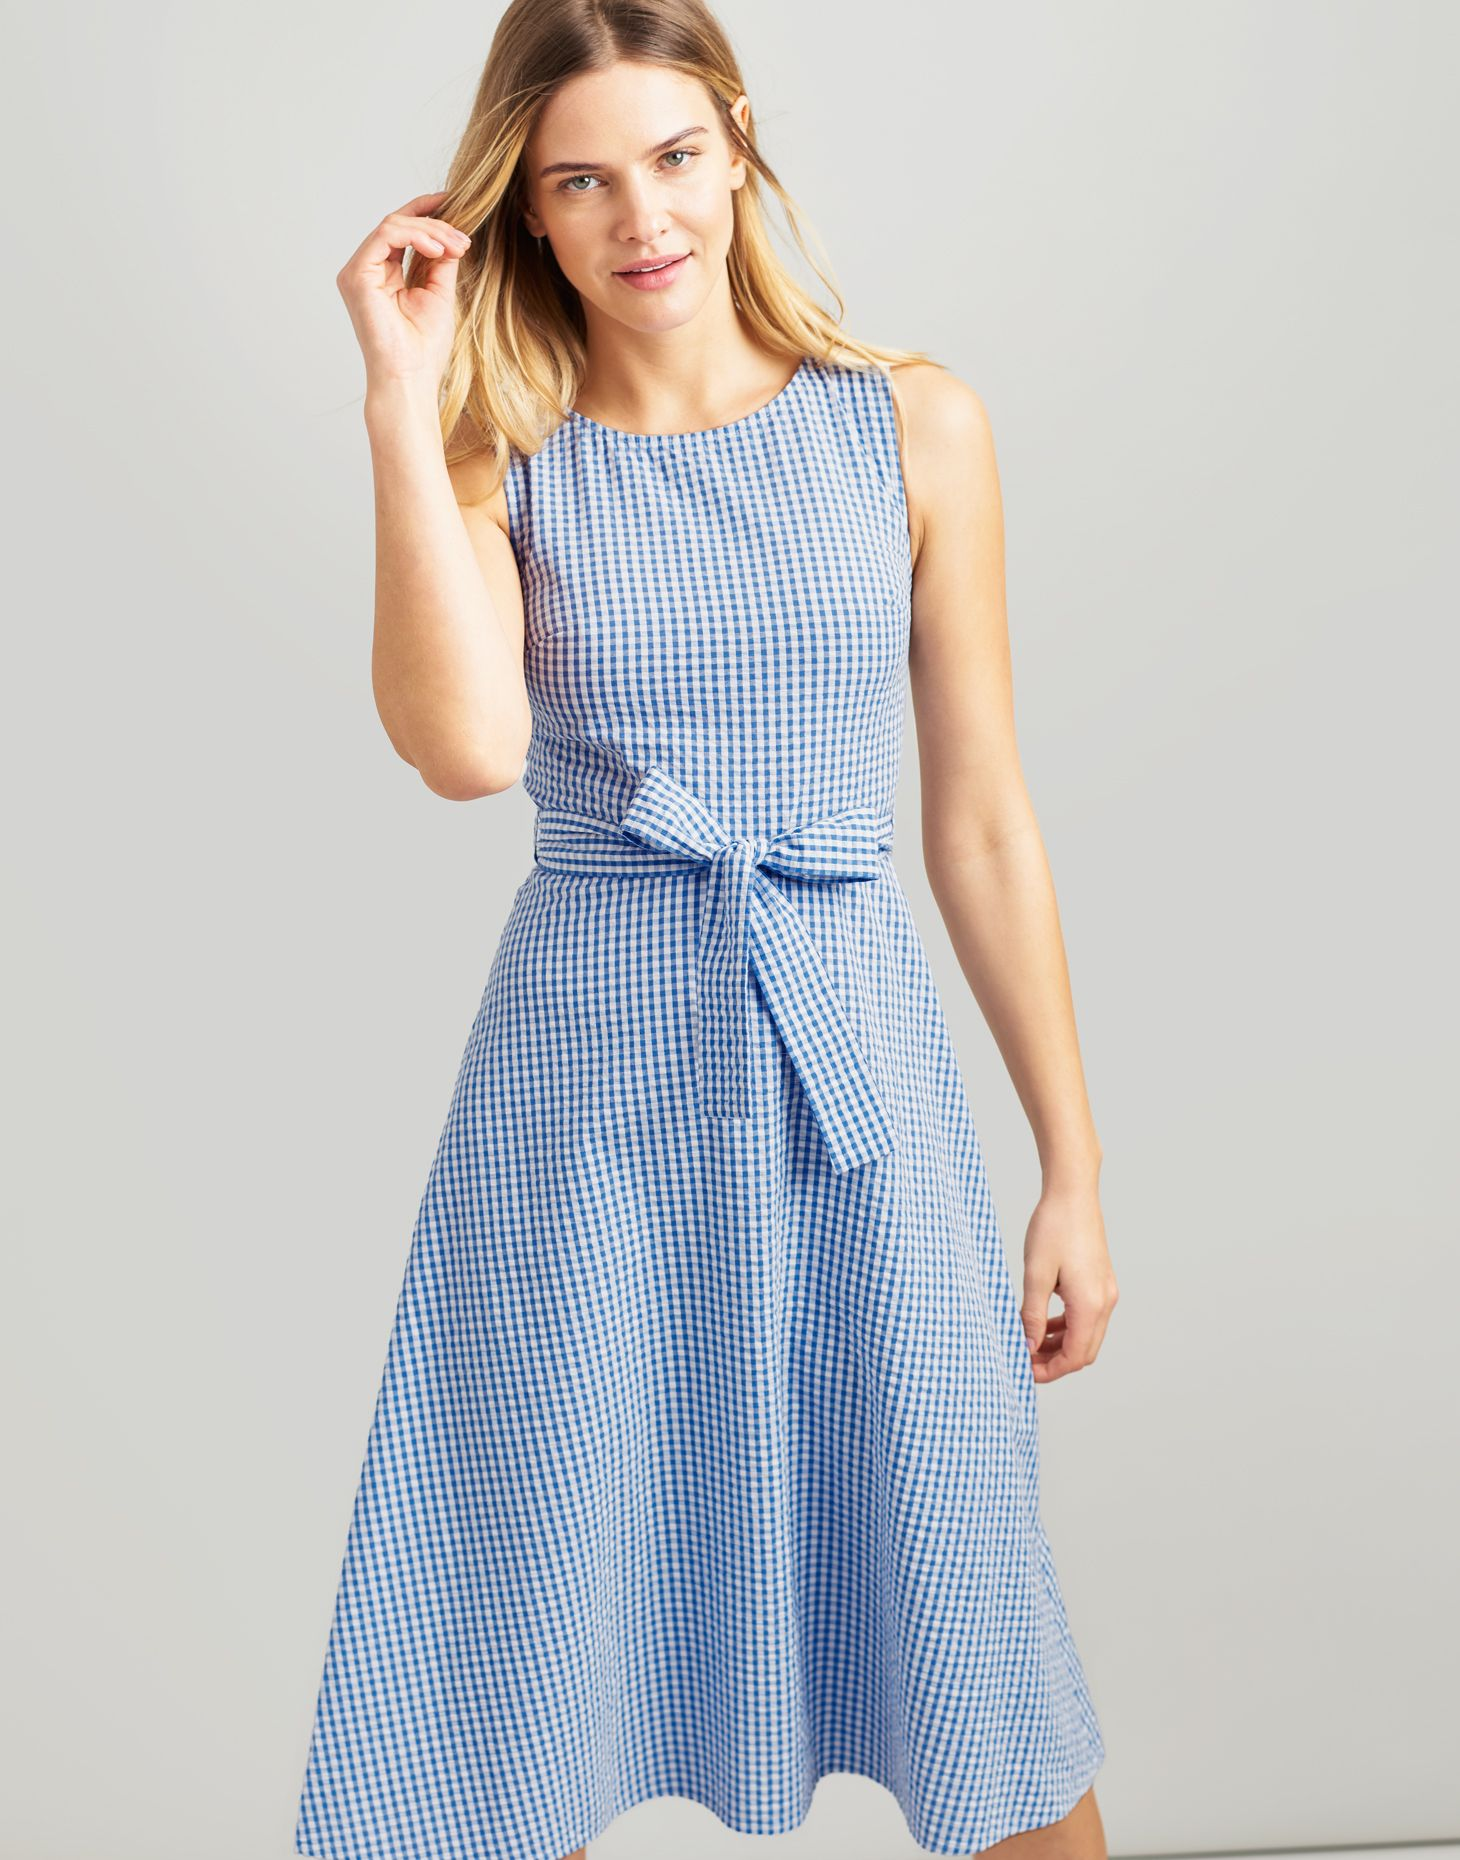 05db2f672 Joules Women Fiona Sleeveless Woven Dress With Tie Detail 4 in Size ...